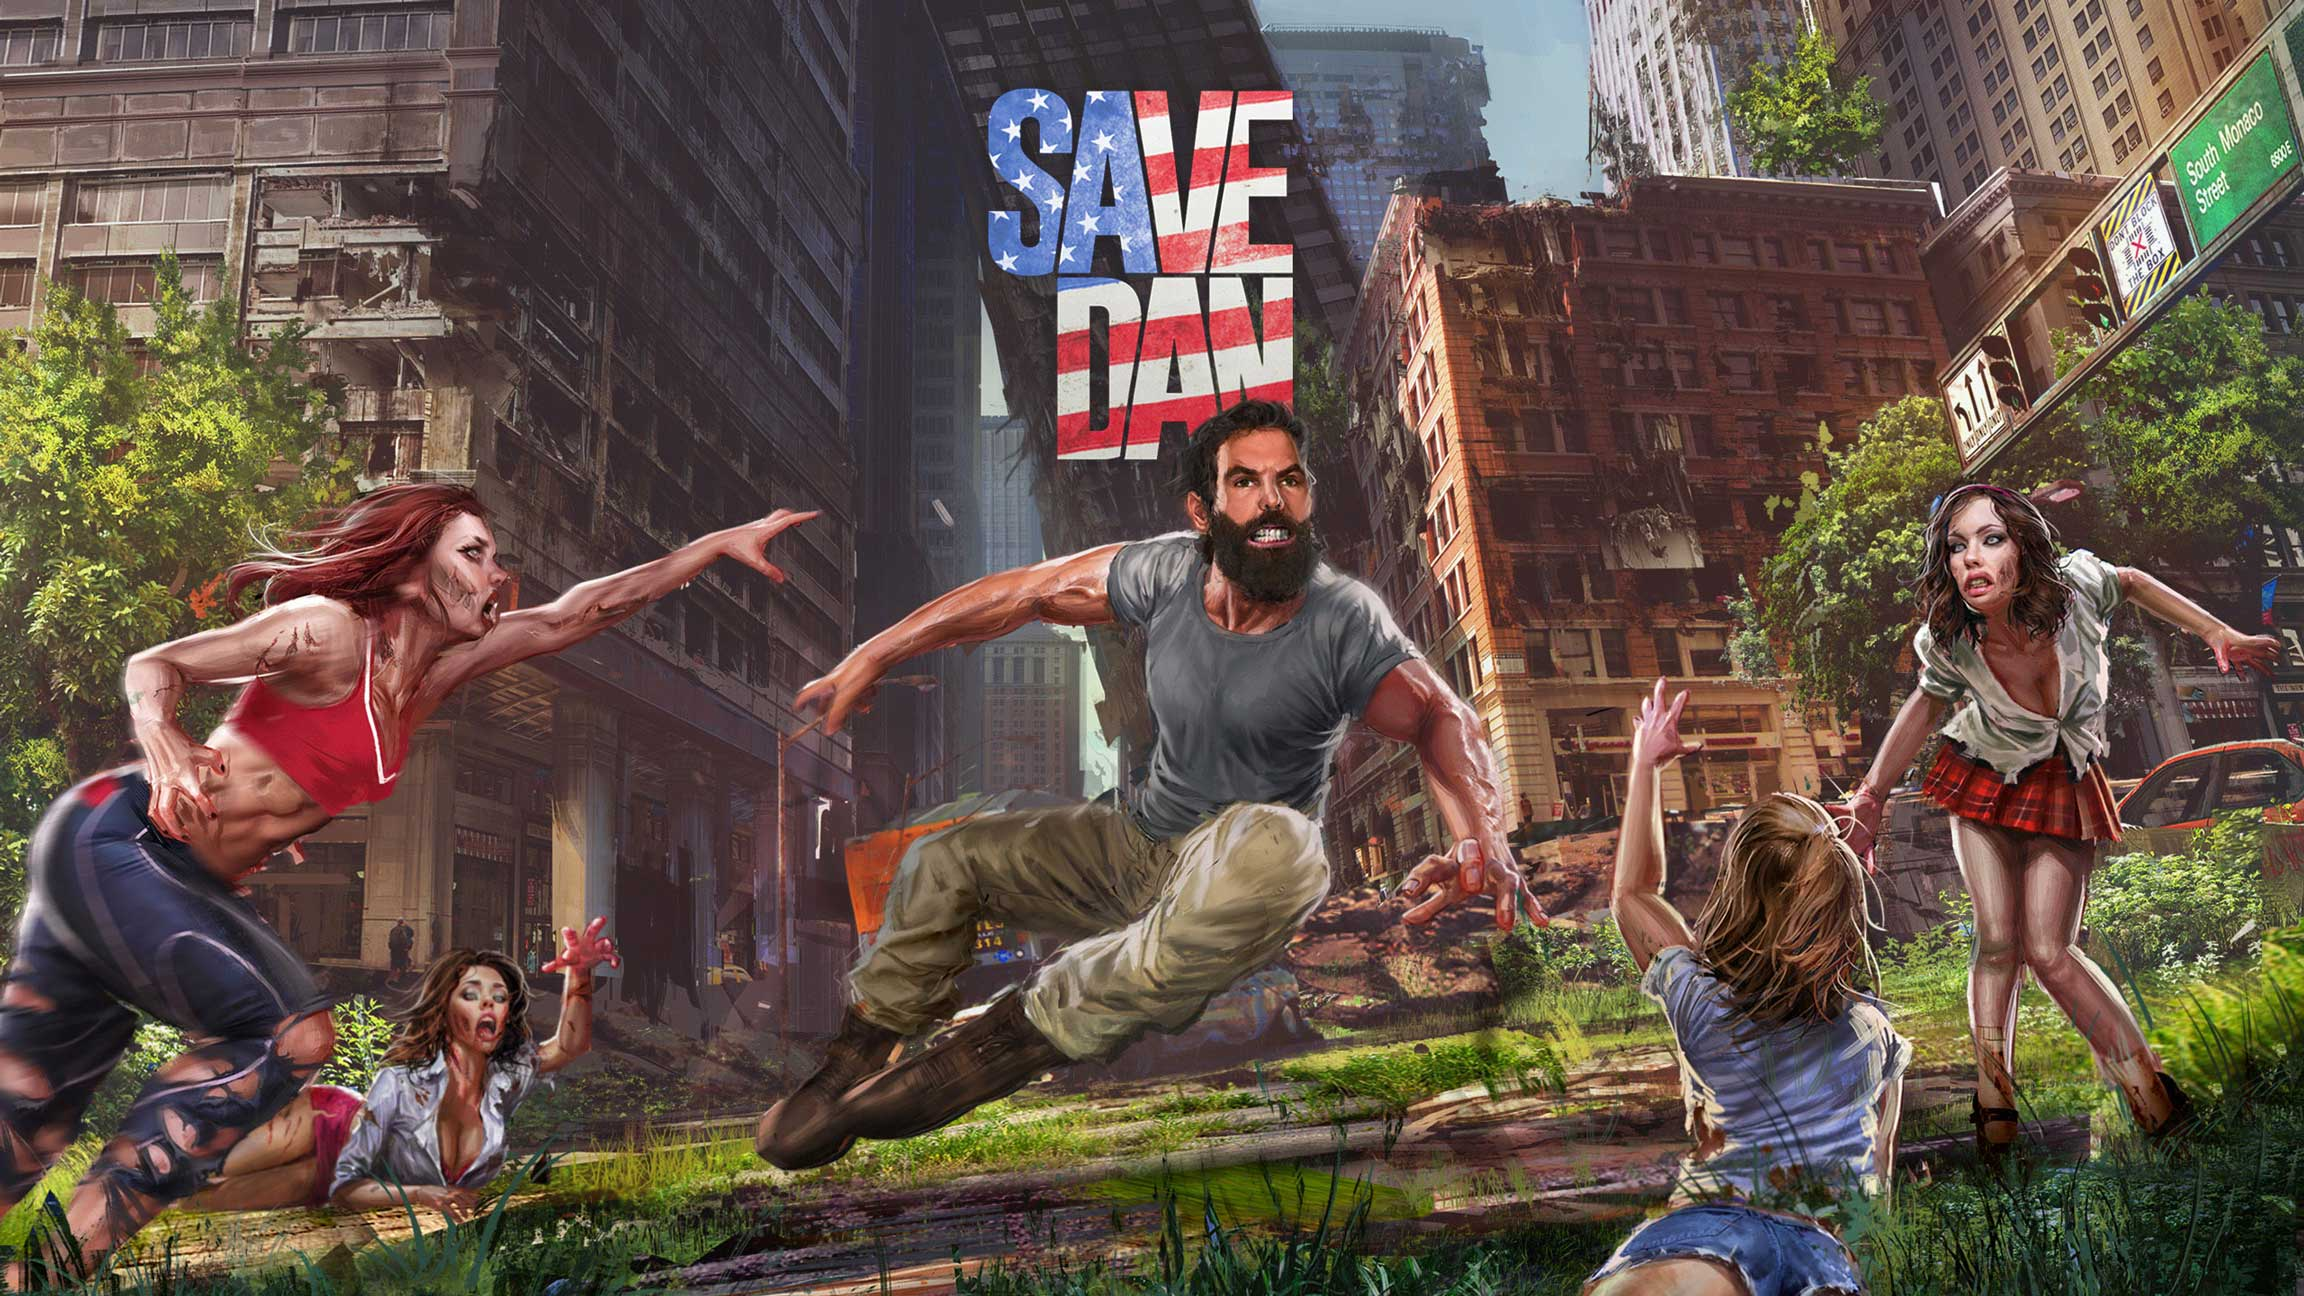 Presenting Save Dan for iOS/Android - The Official Dan Bilzerian Game Image